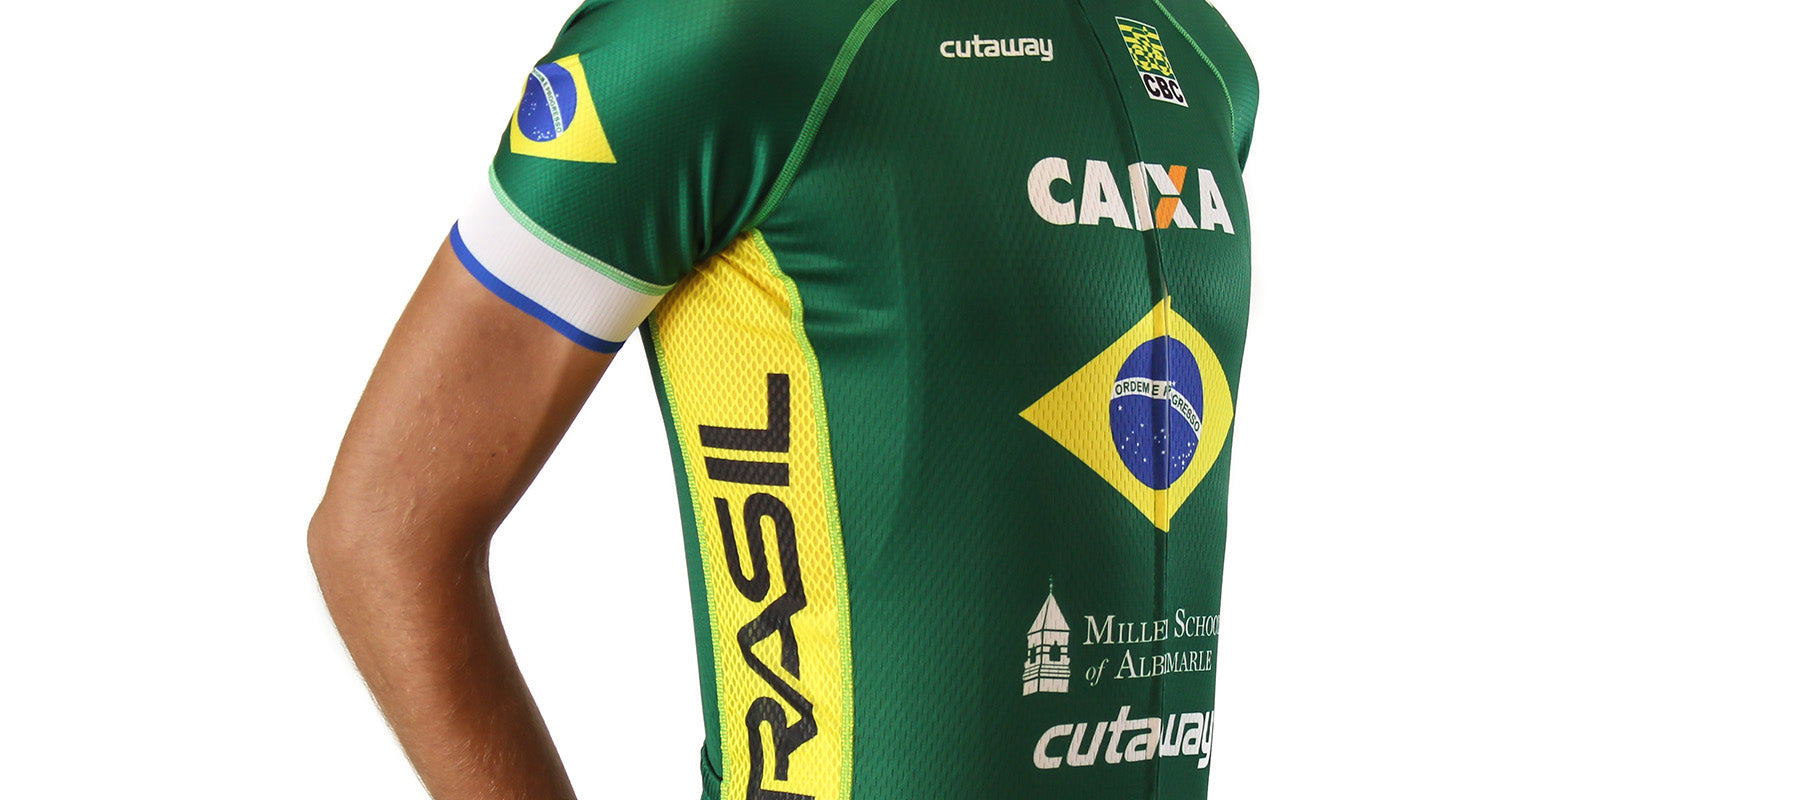 Brasil 2015 World Championships Kit